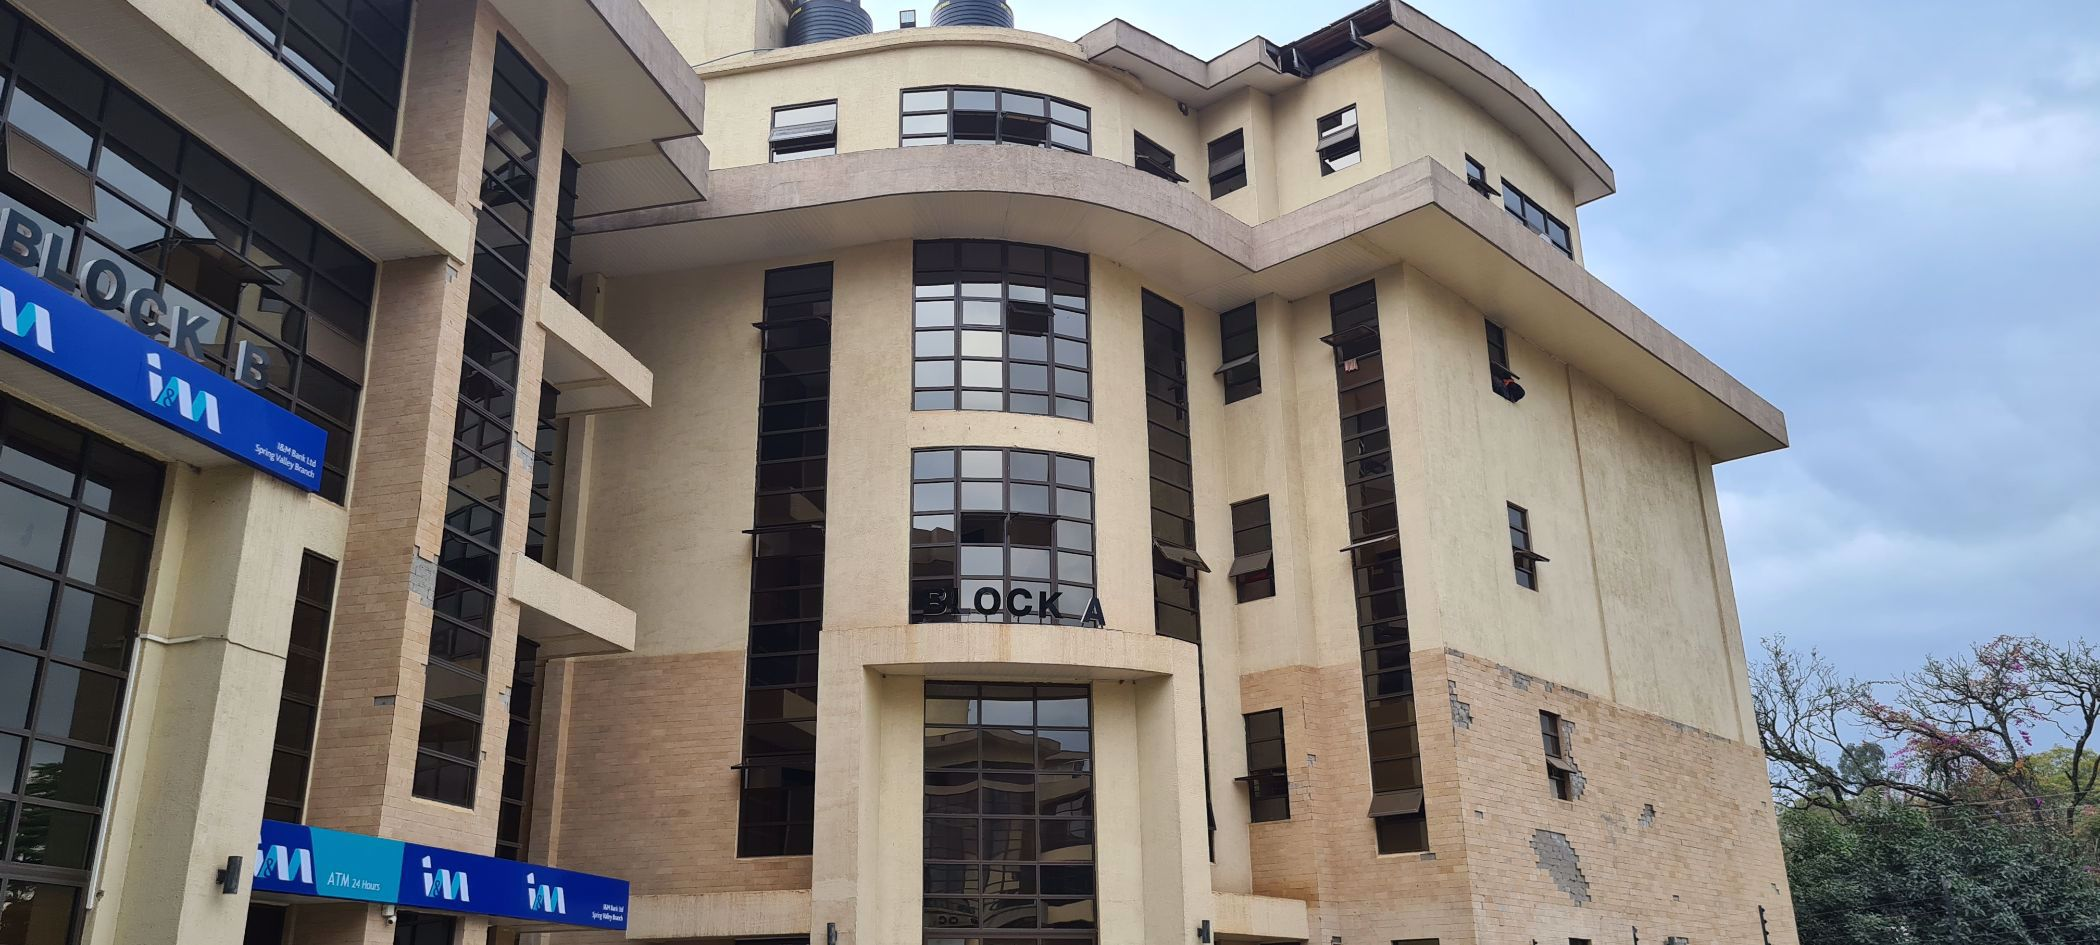 345 m² commercial retail property to rent in Lower Kabete (Kenya)